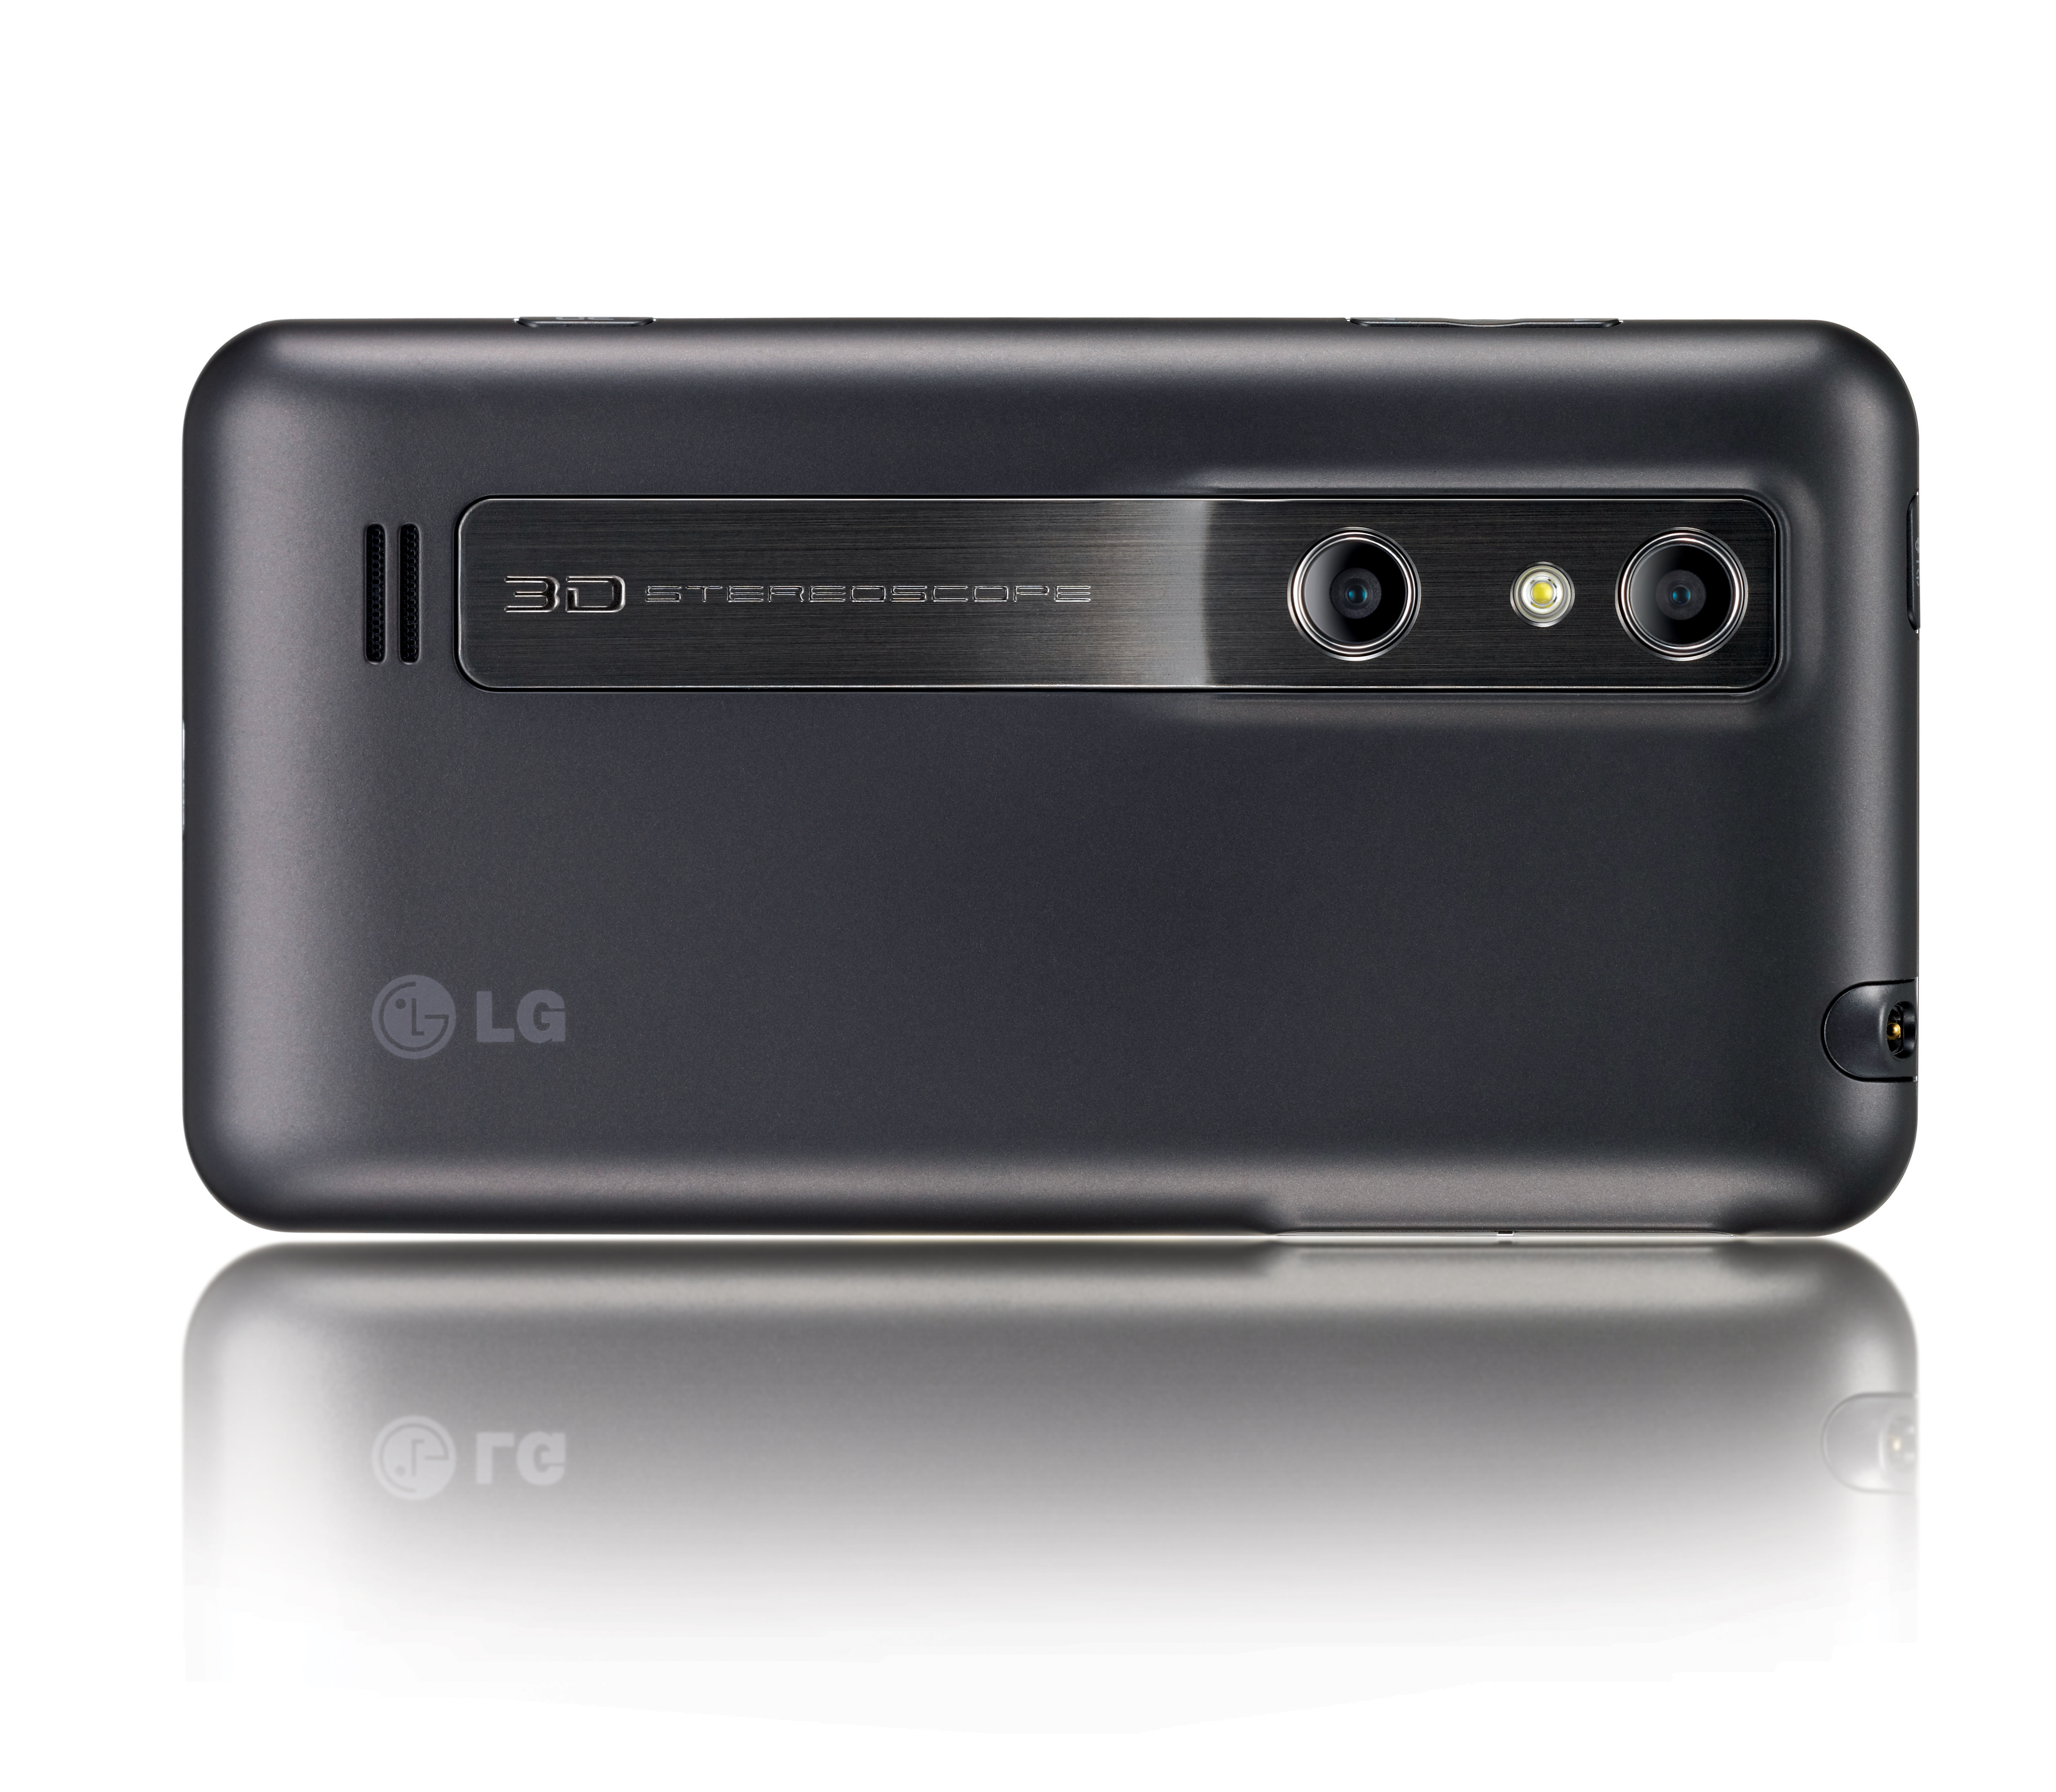 A horizontal view of the LG Optimus 3D's rear